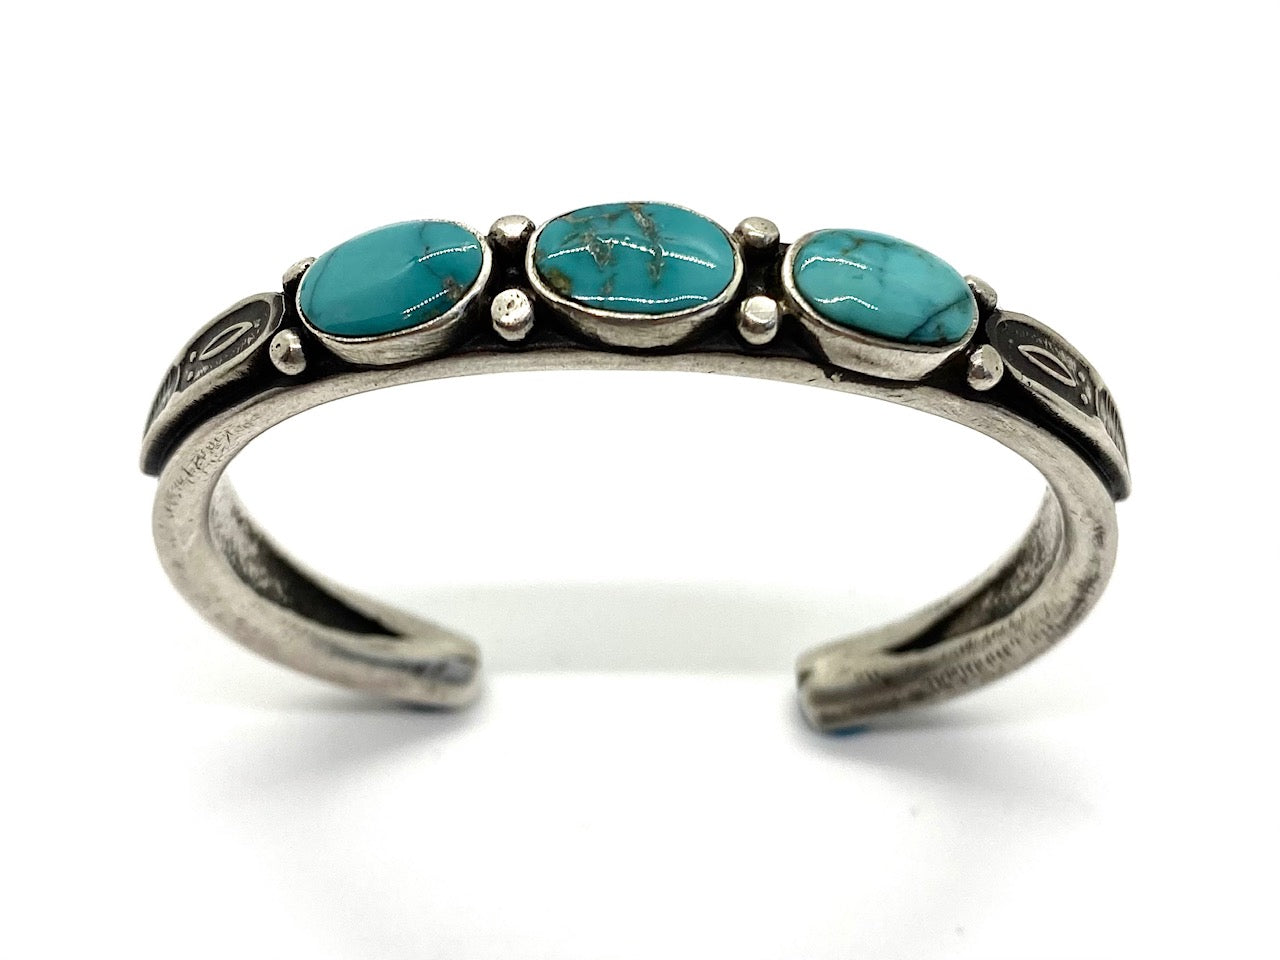 3 Stone Sterling Silver and Turquoise Bracelet